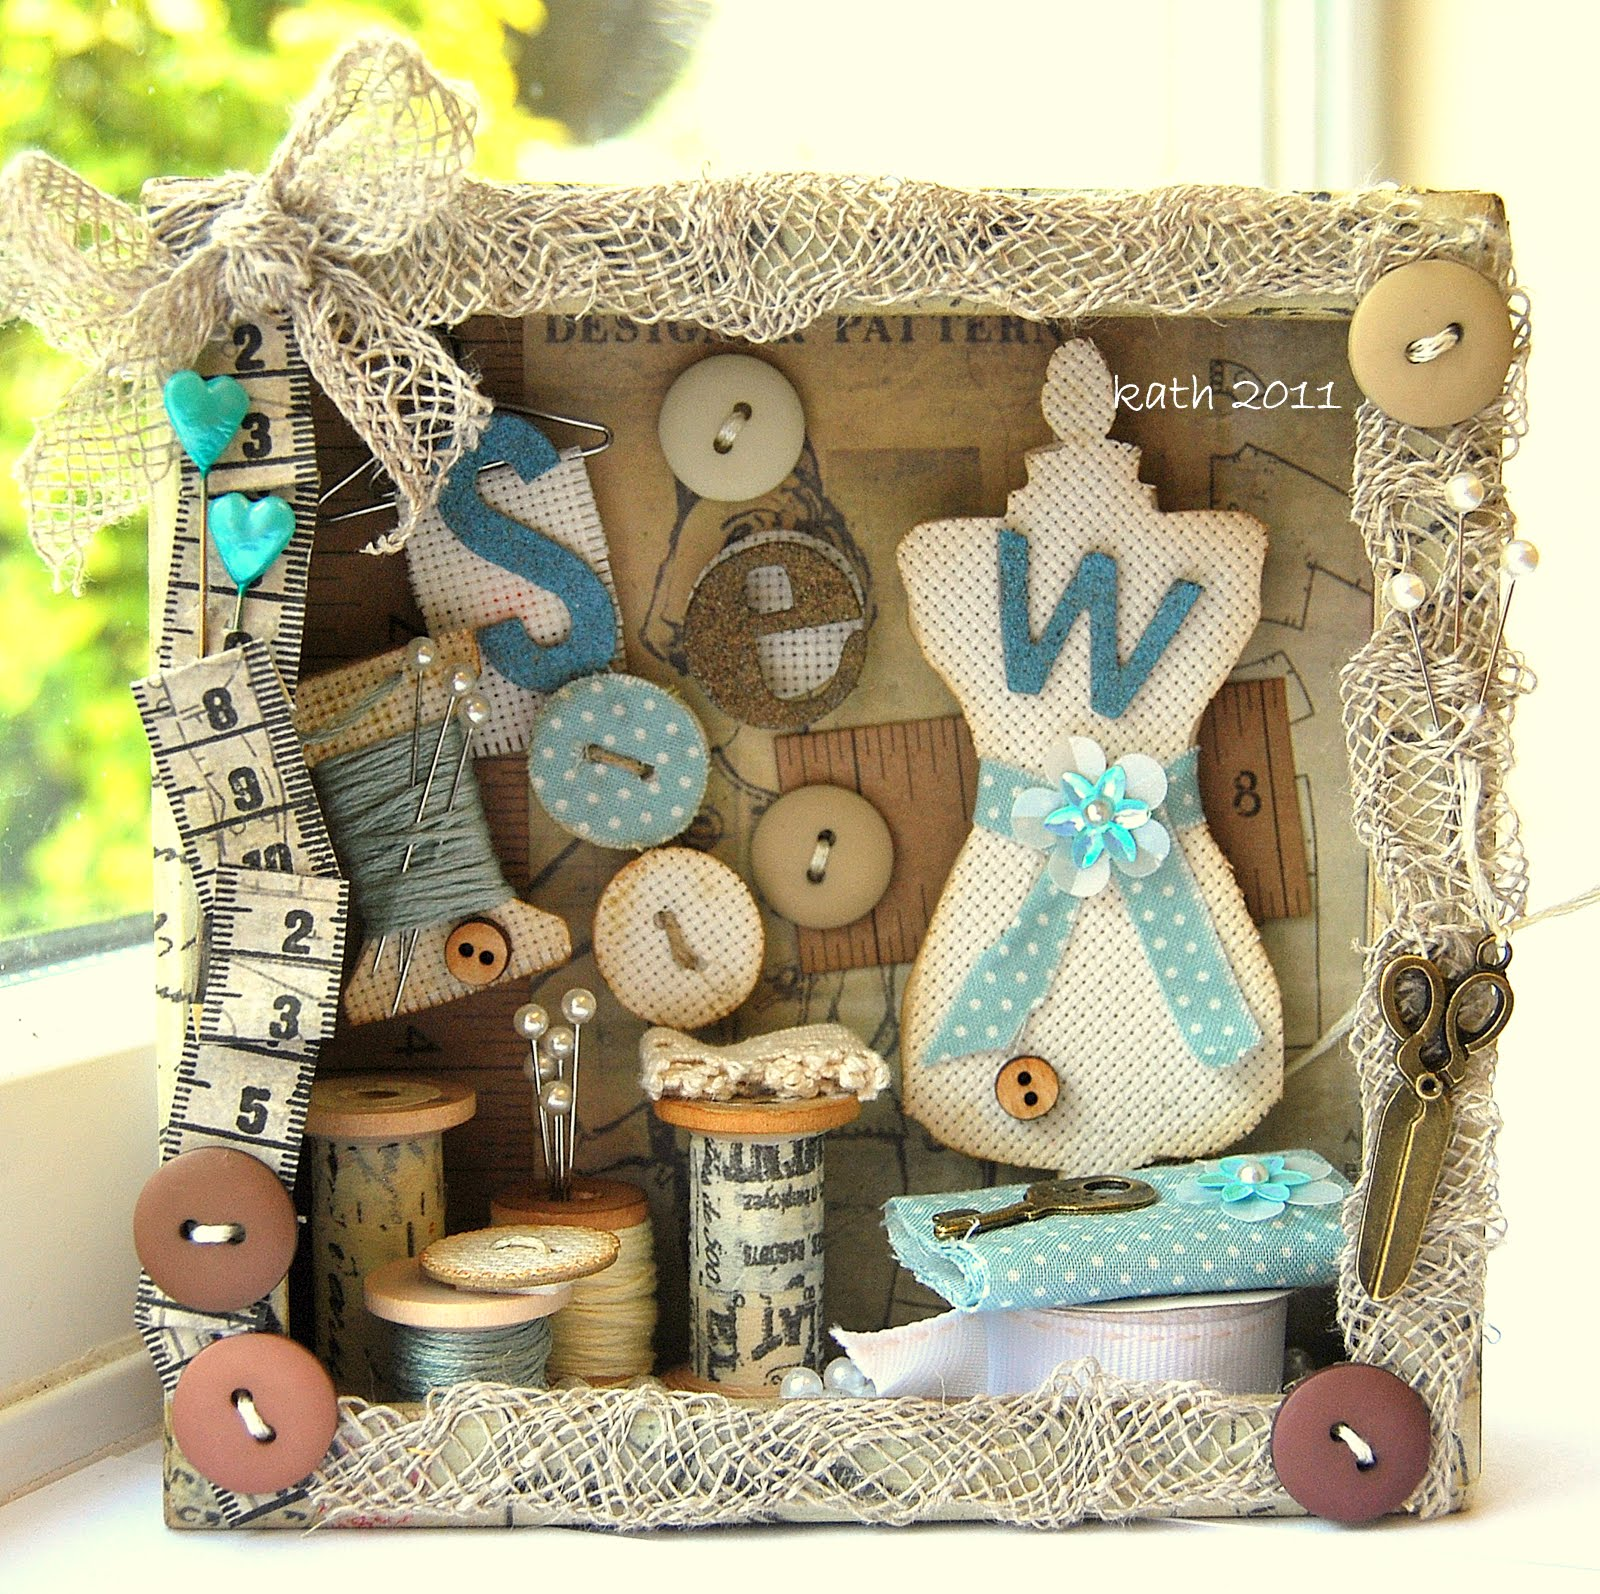 Buttons, spools, and sewing trinkets